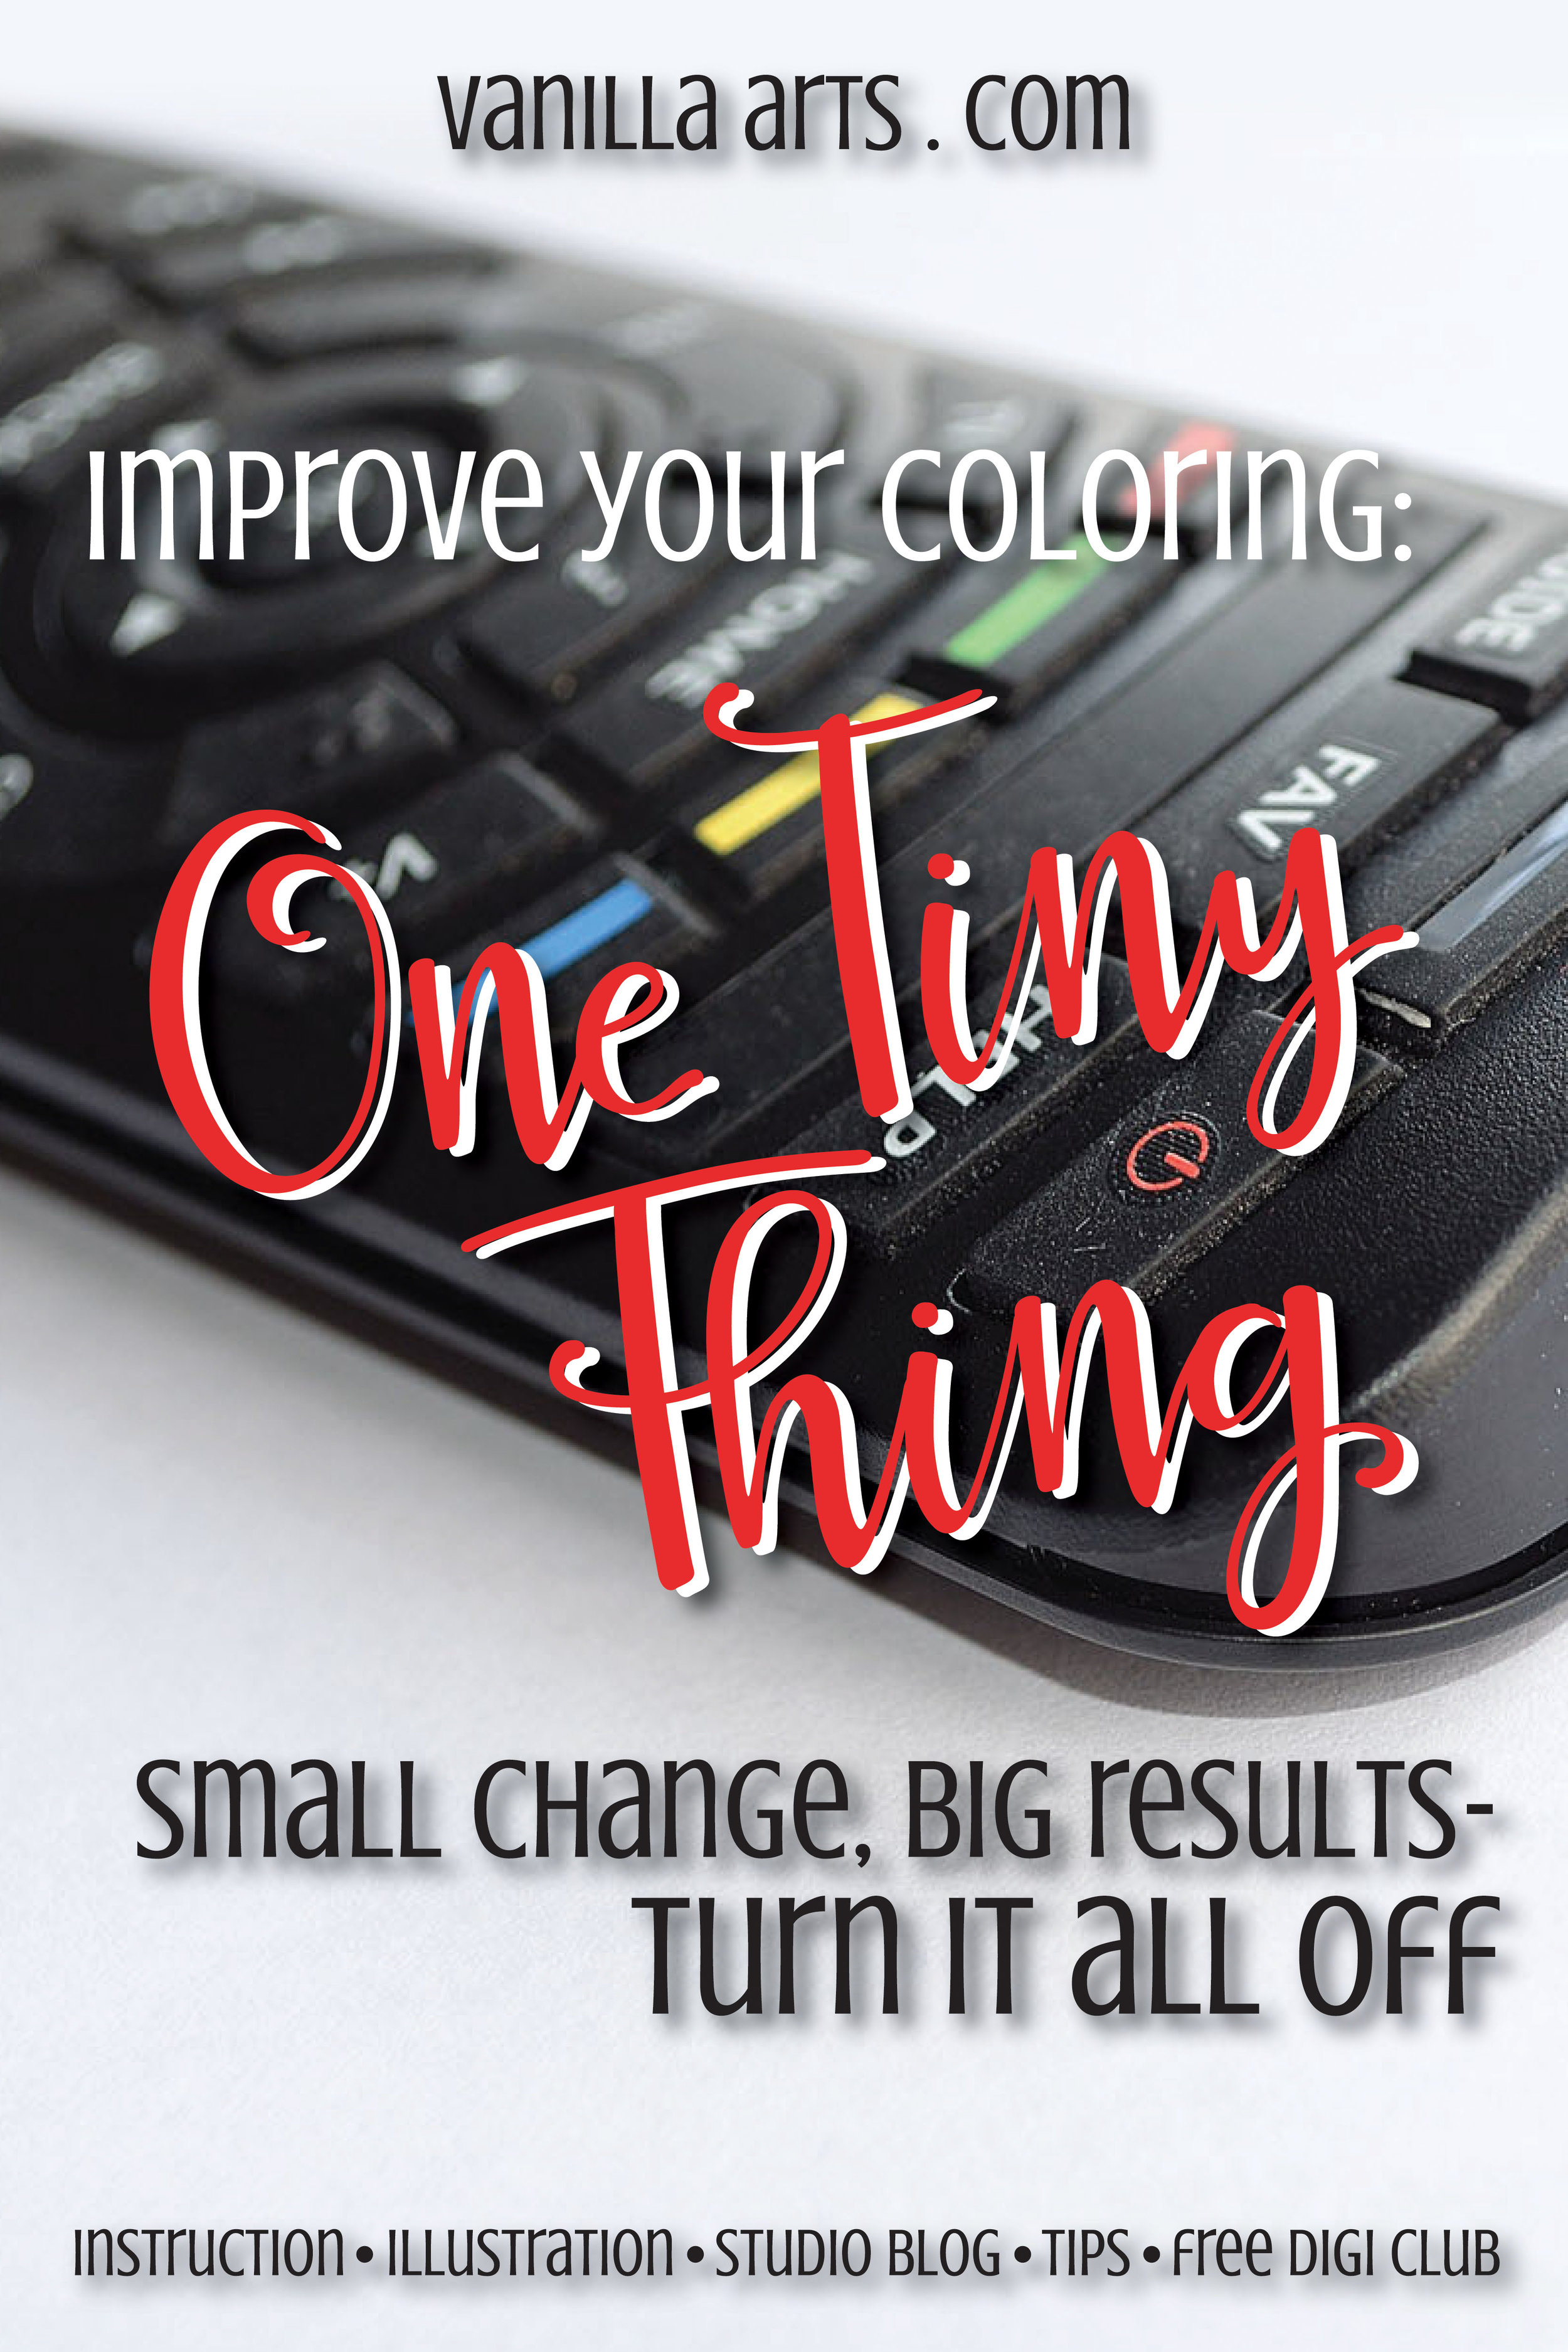 One Tiny Thing (small change, big results)- Distracted coloring is never your best work. | VanillaArts.com